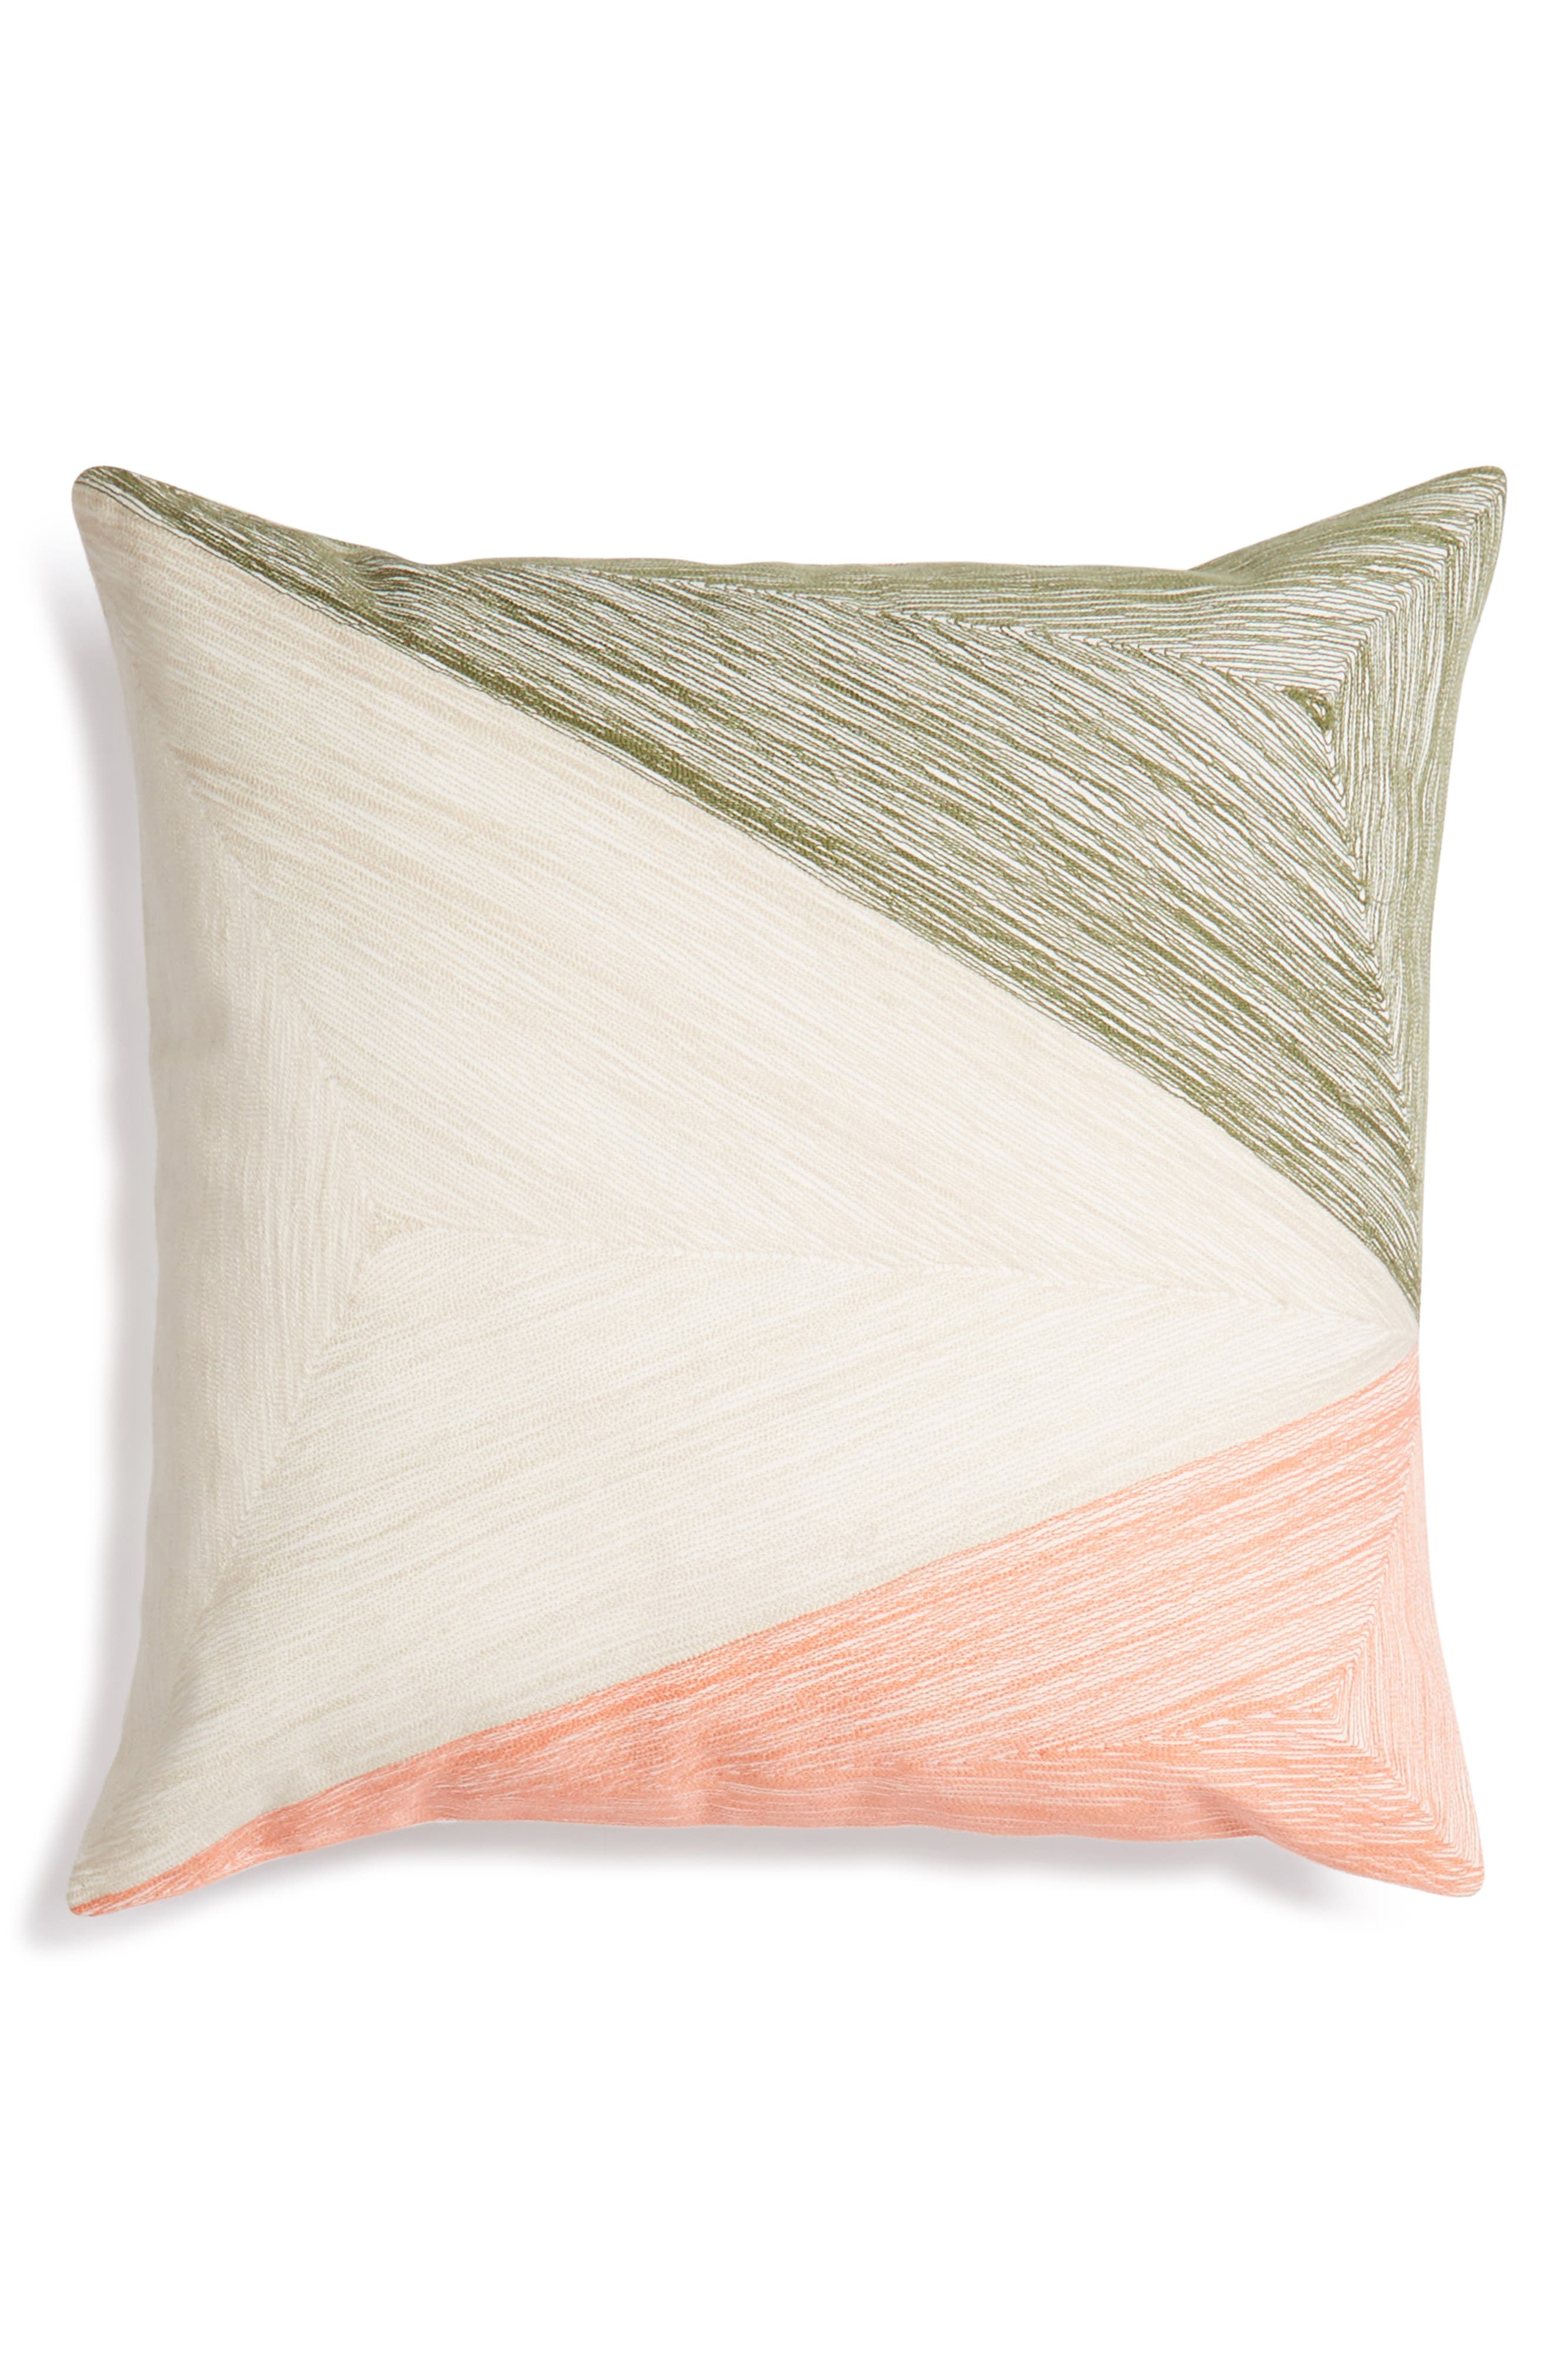 Nordstrom at Home Stitch In Time Accent Pillow